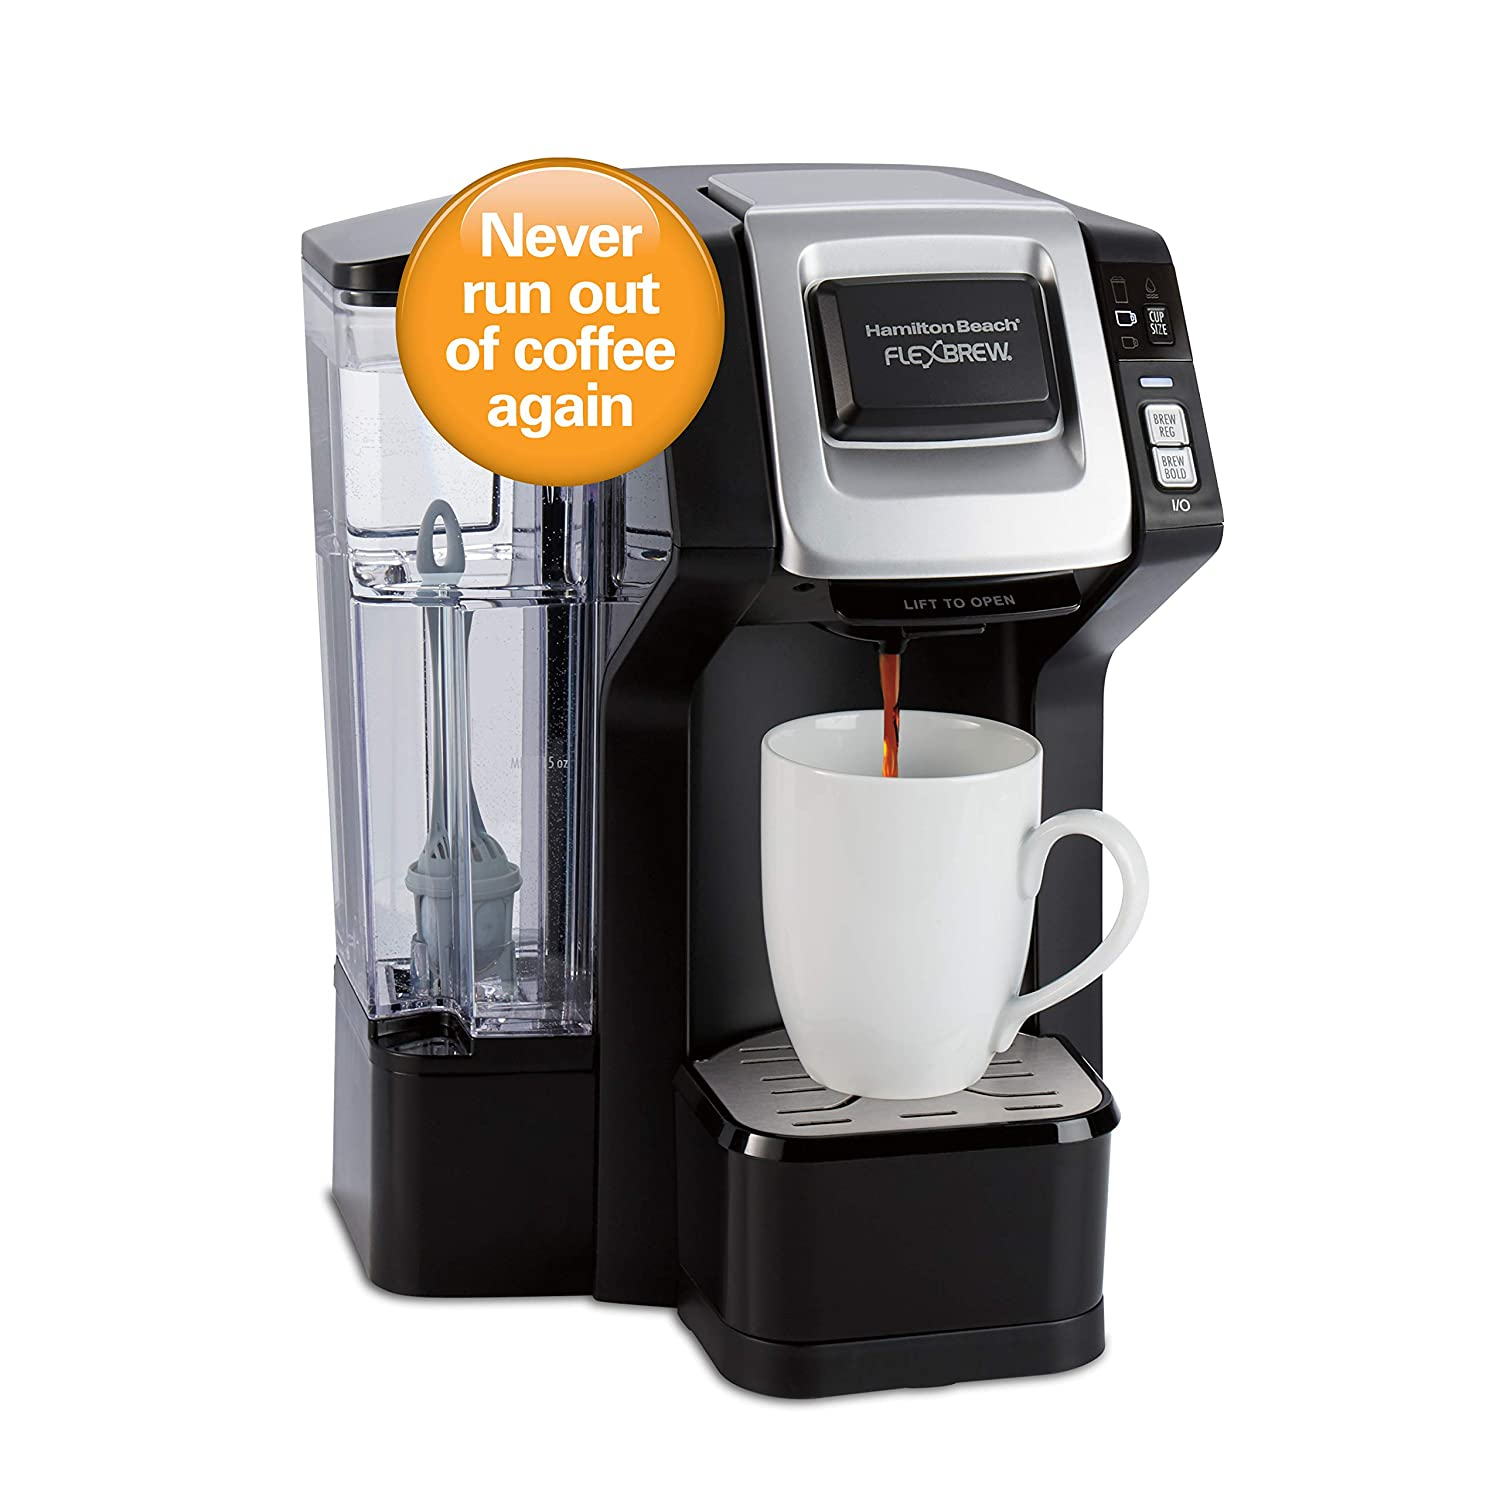 Hamilton Beach 49968 FlexBrew Connected Single-Serve Coffee Maker, with Amazon Dash Auto Replenishment for Coffee Pods